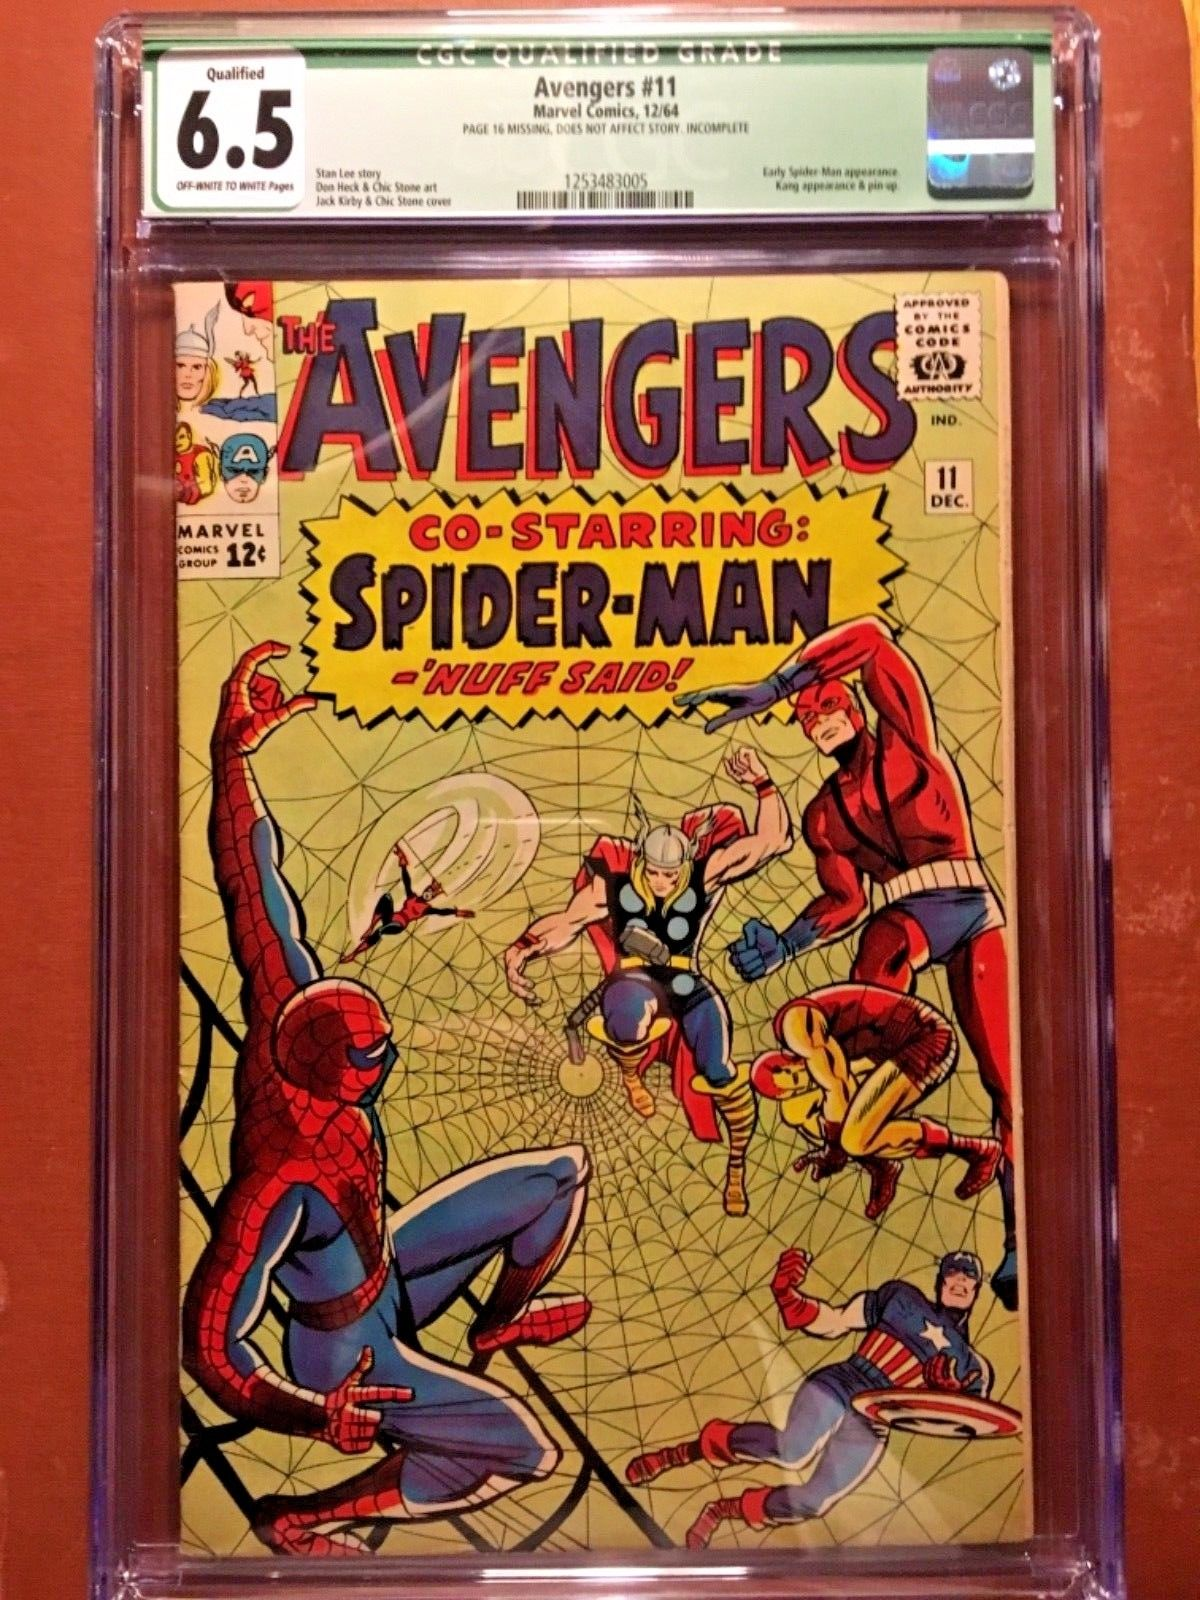 Avengers 11 CGC 6.5 Q PAGE 16 MISSING KIRBY NICE EARLY MARVEL